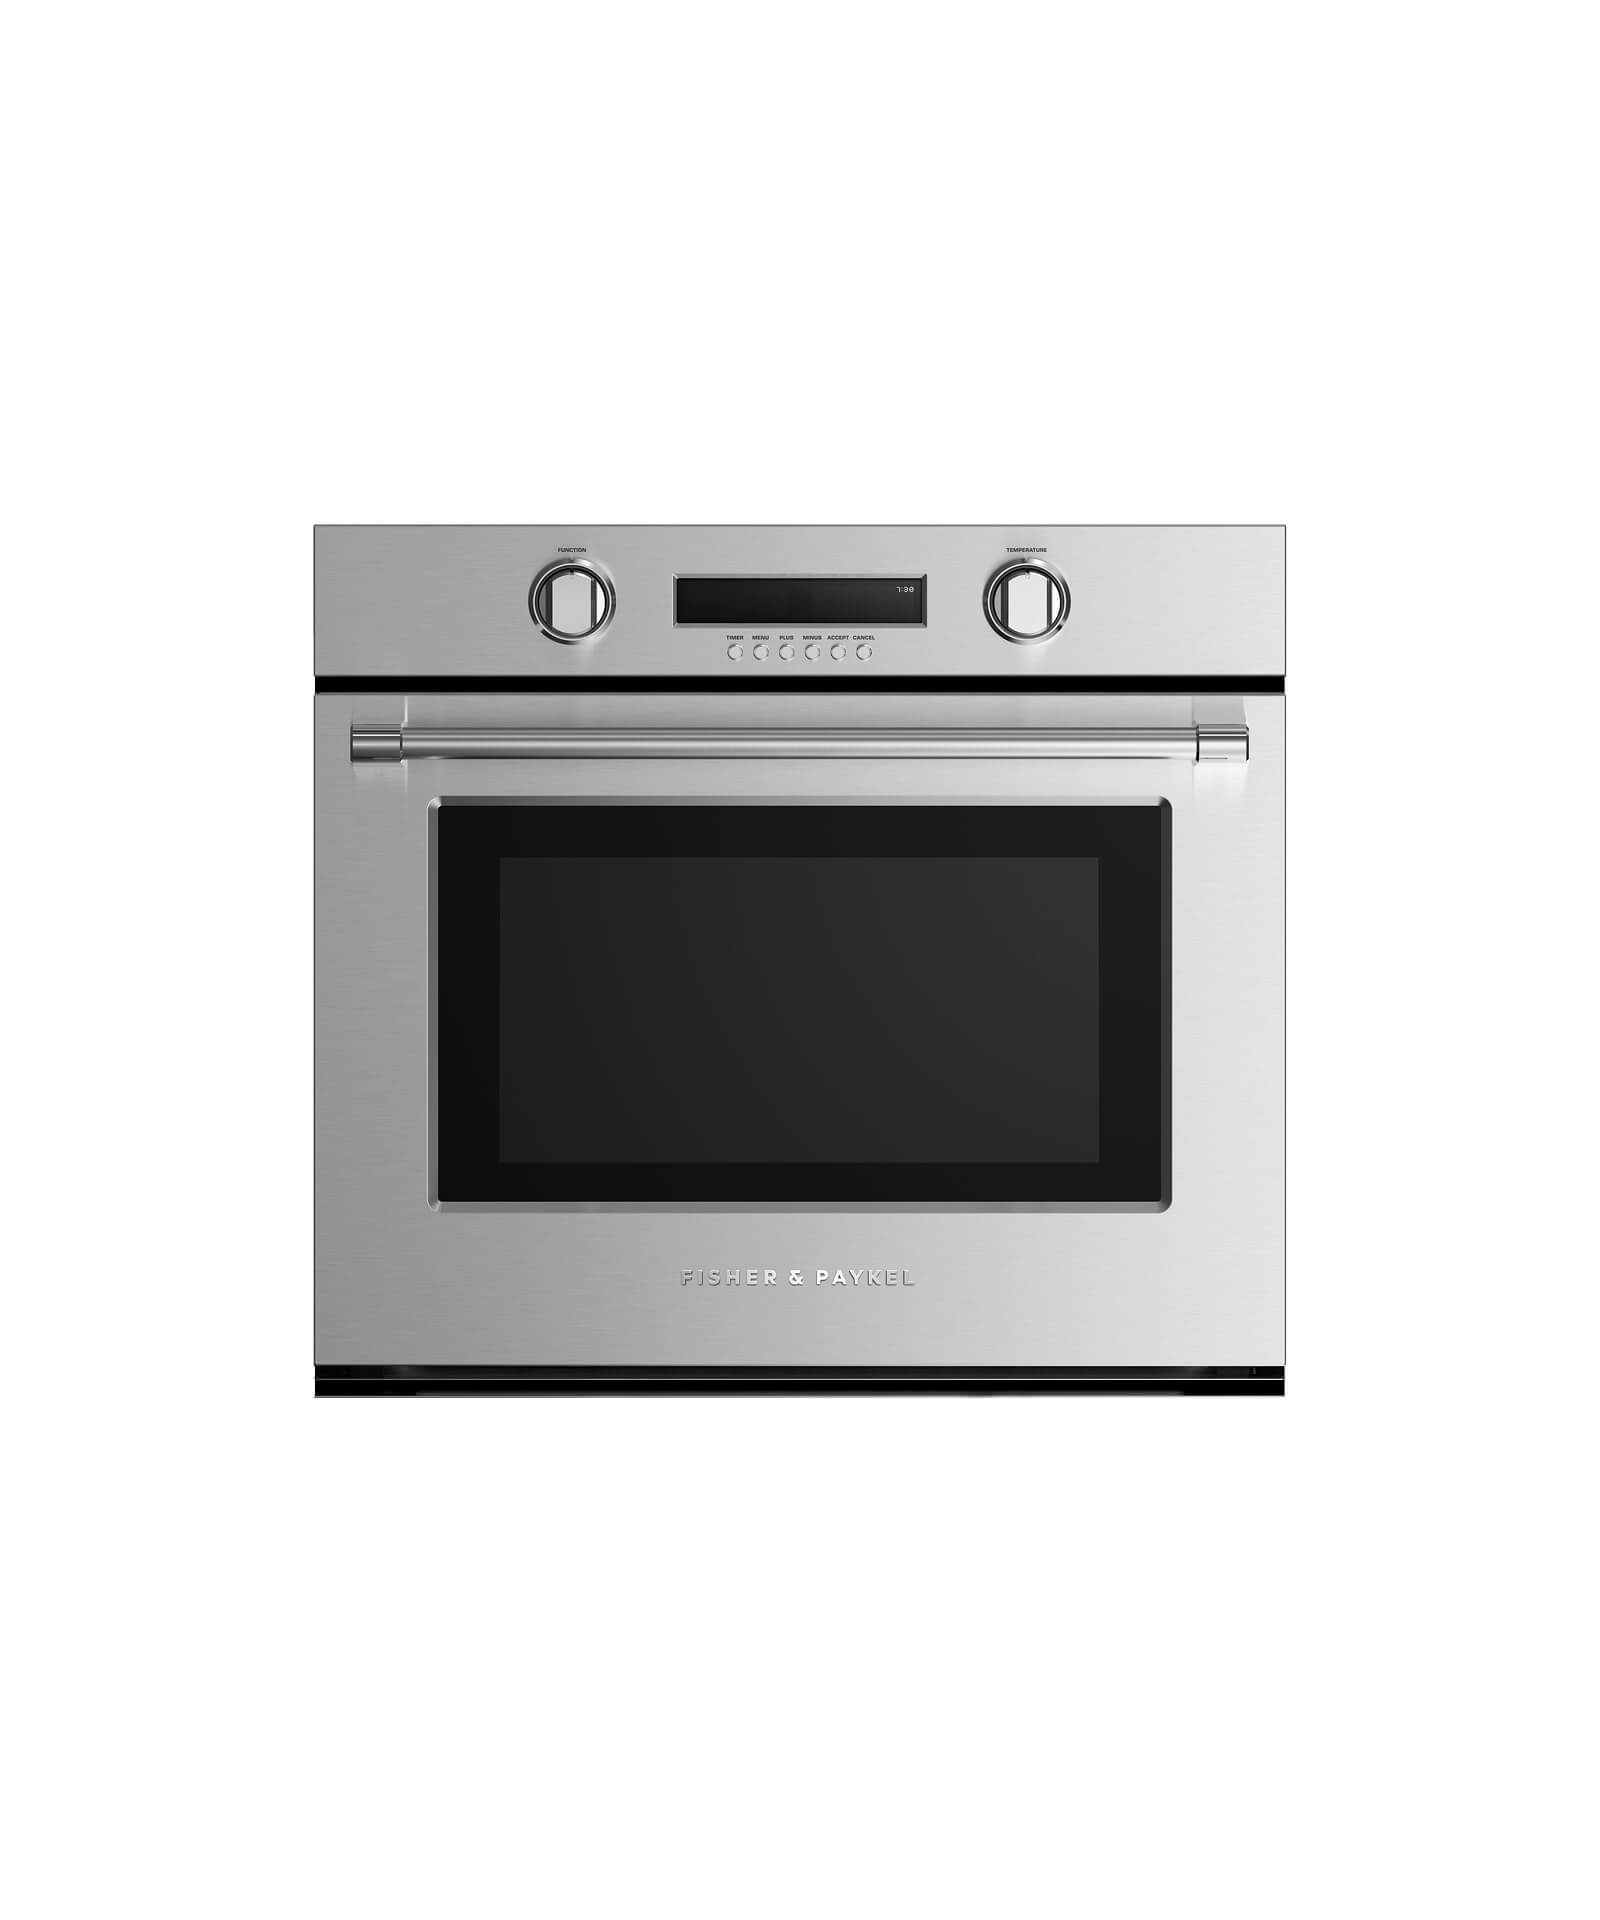 """Fisher and Paykel Built-in Oven 30"""" 4.1 cu ft, 10 Functions"""